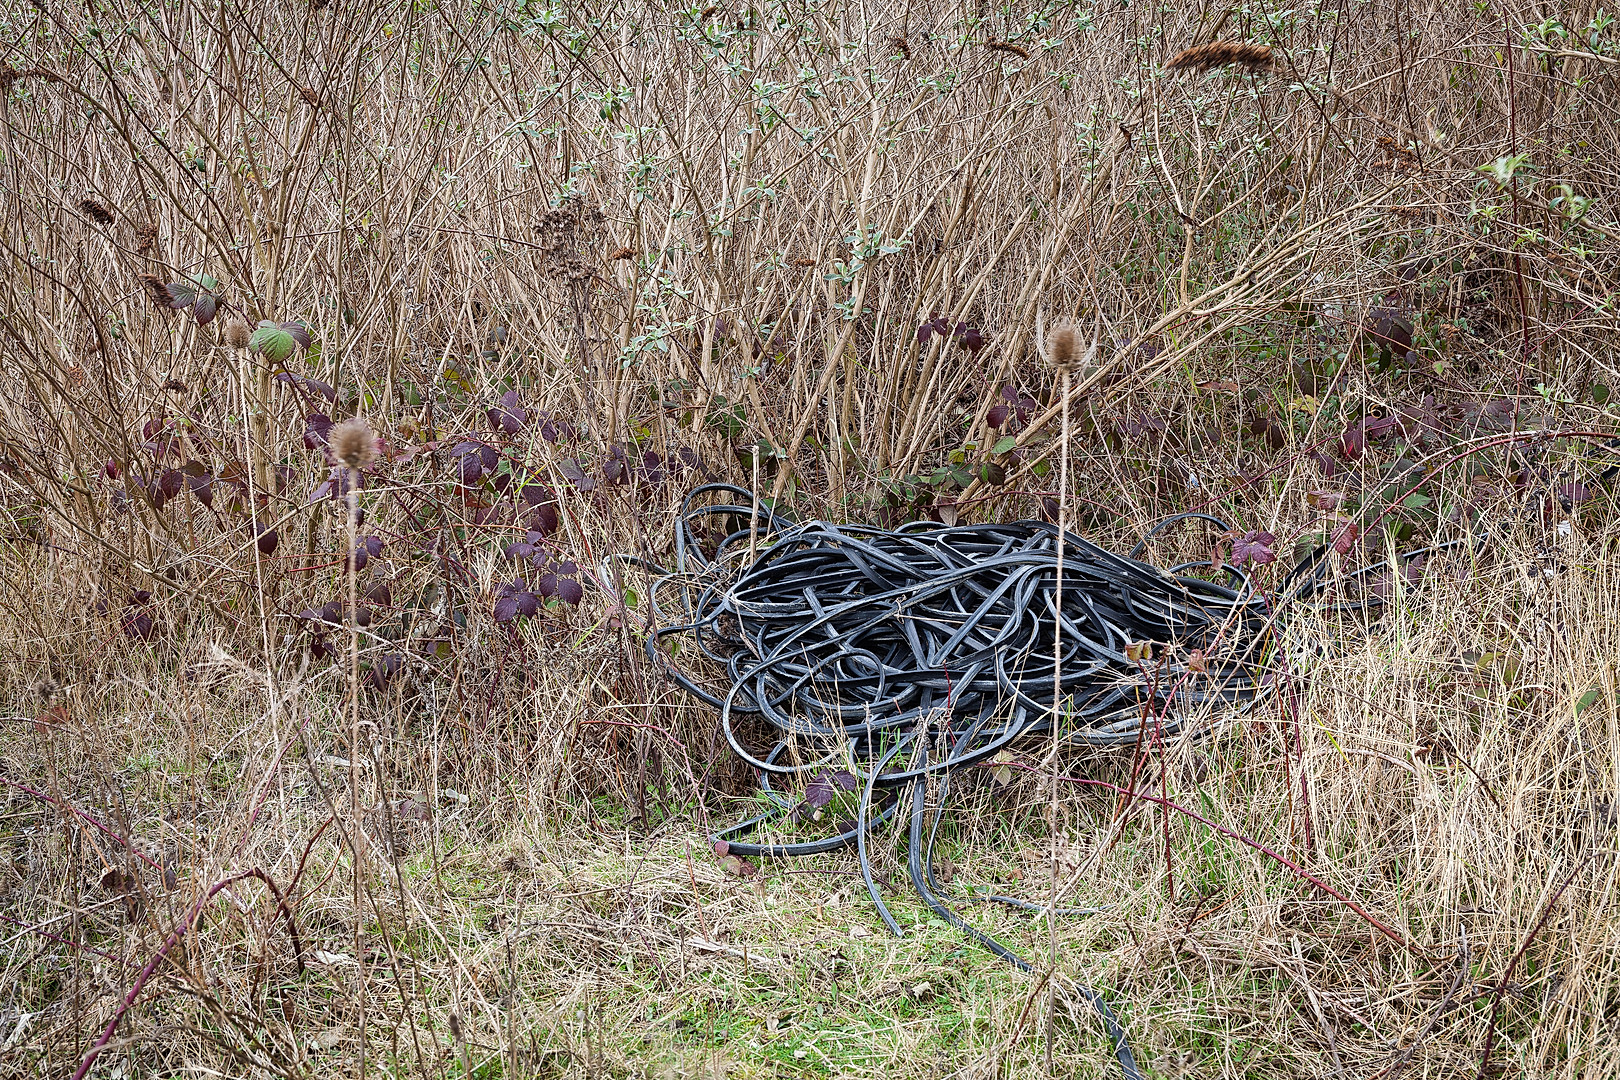 Black rubber tubing in undergrowth